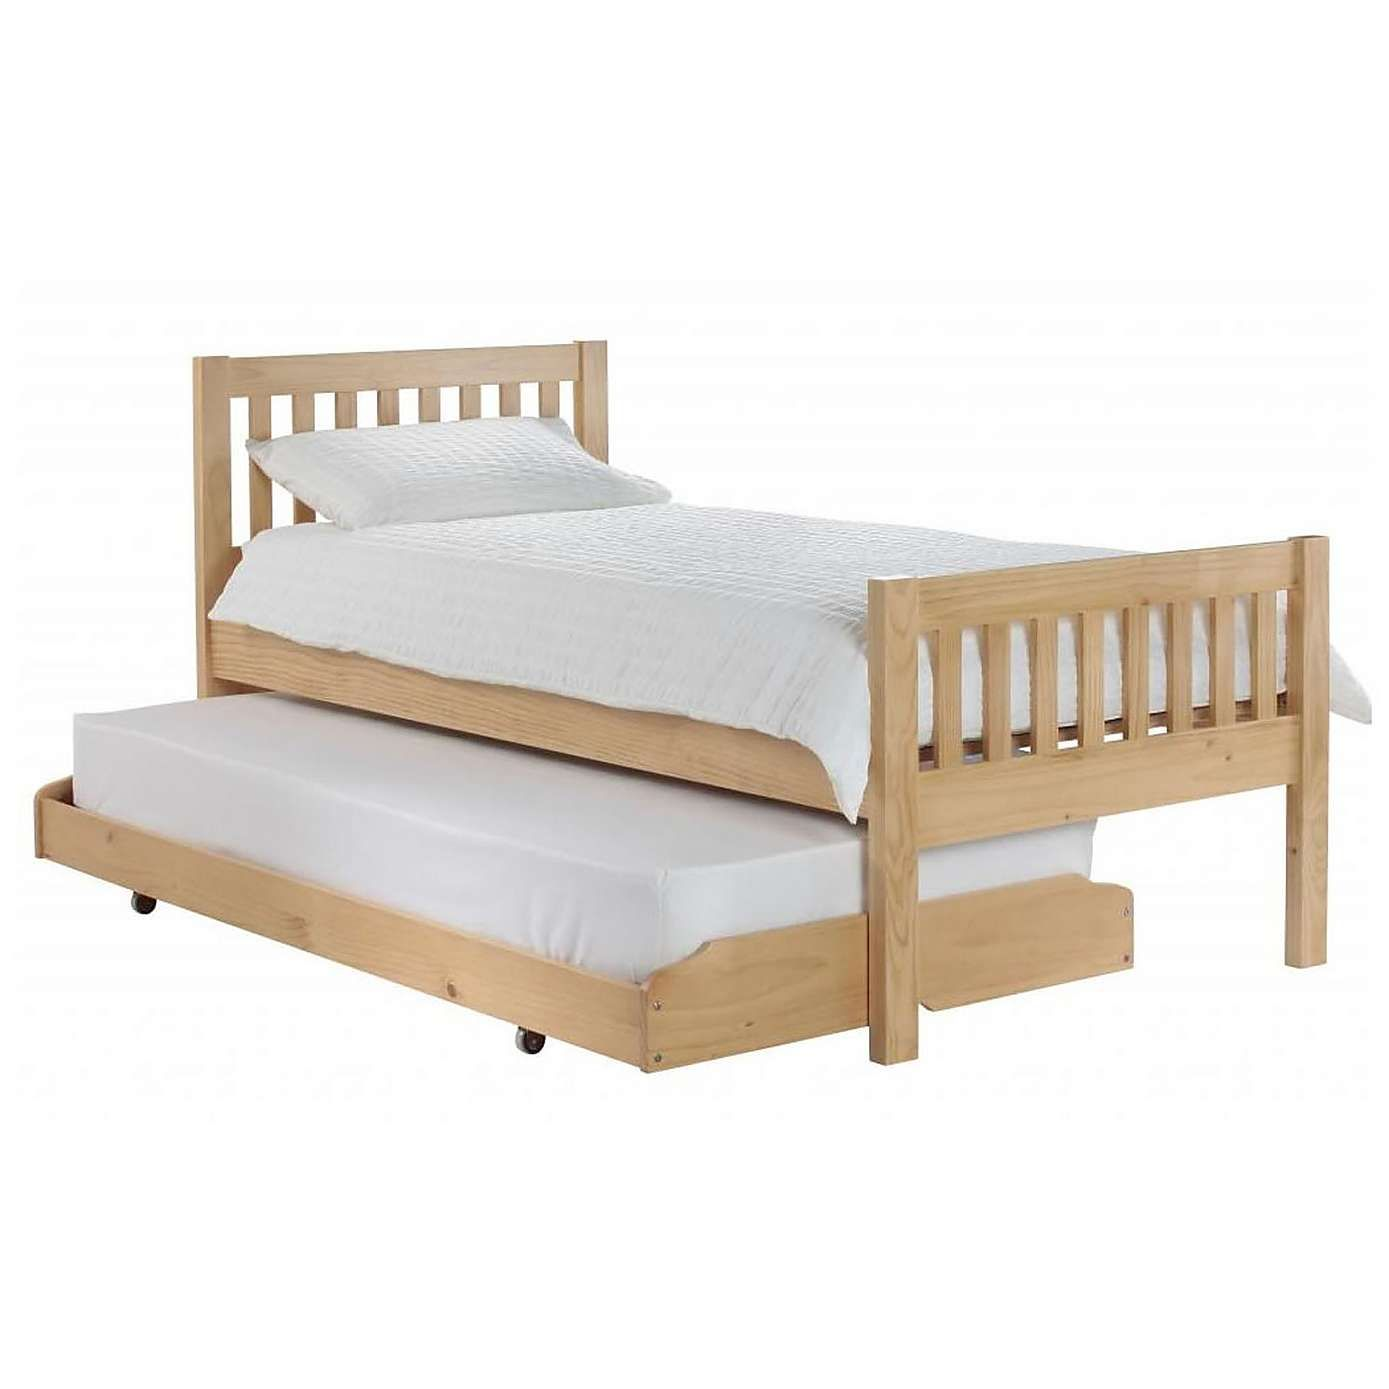 Lena Pine Wooden Guest Bed